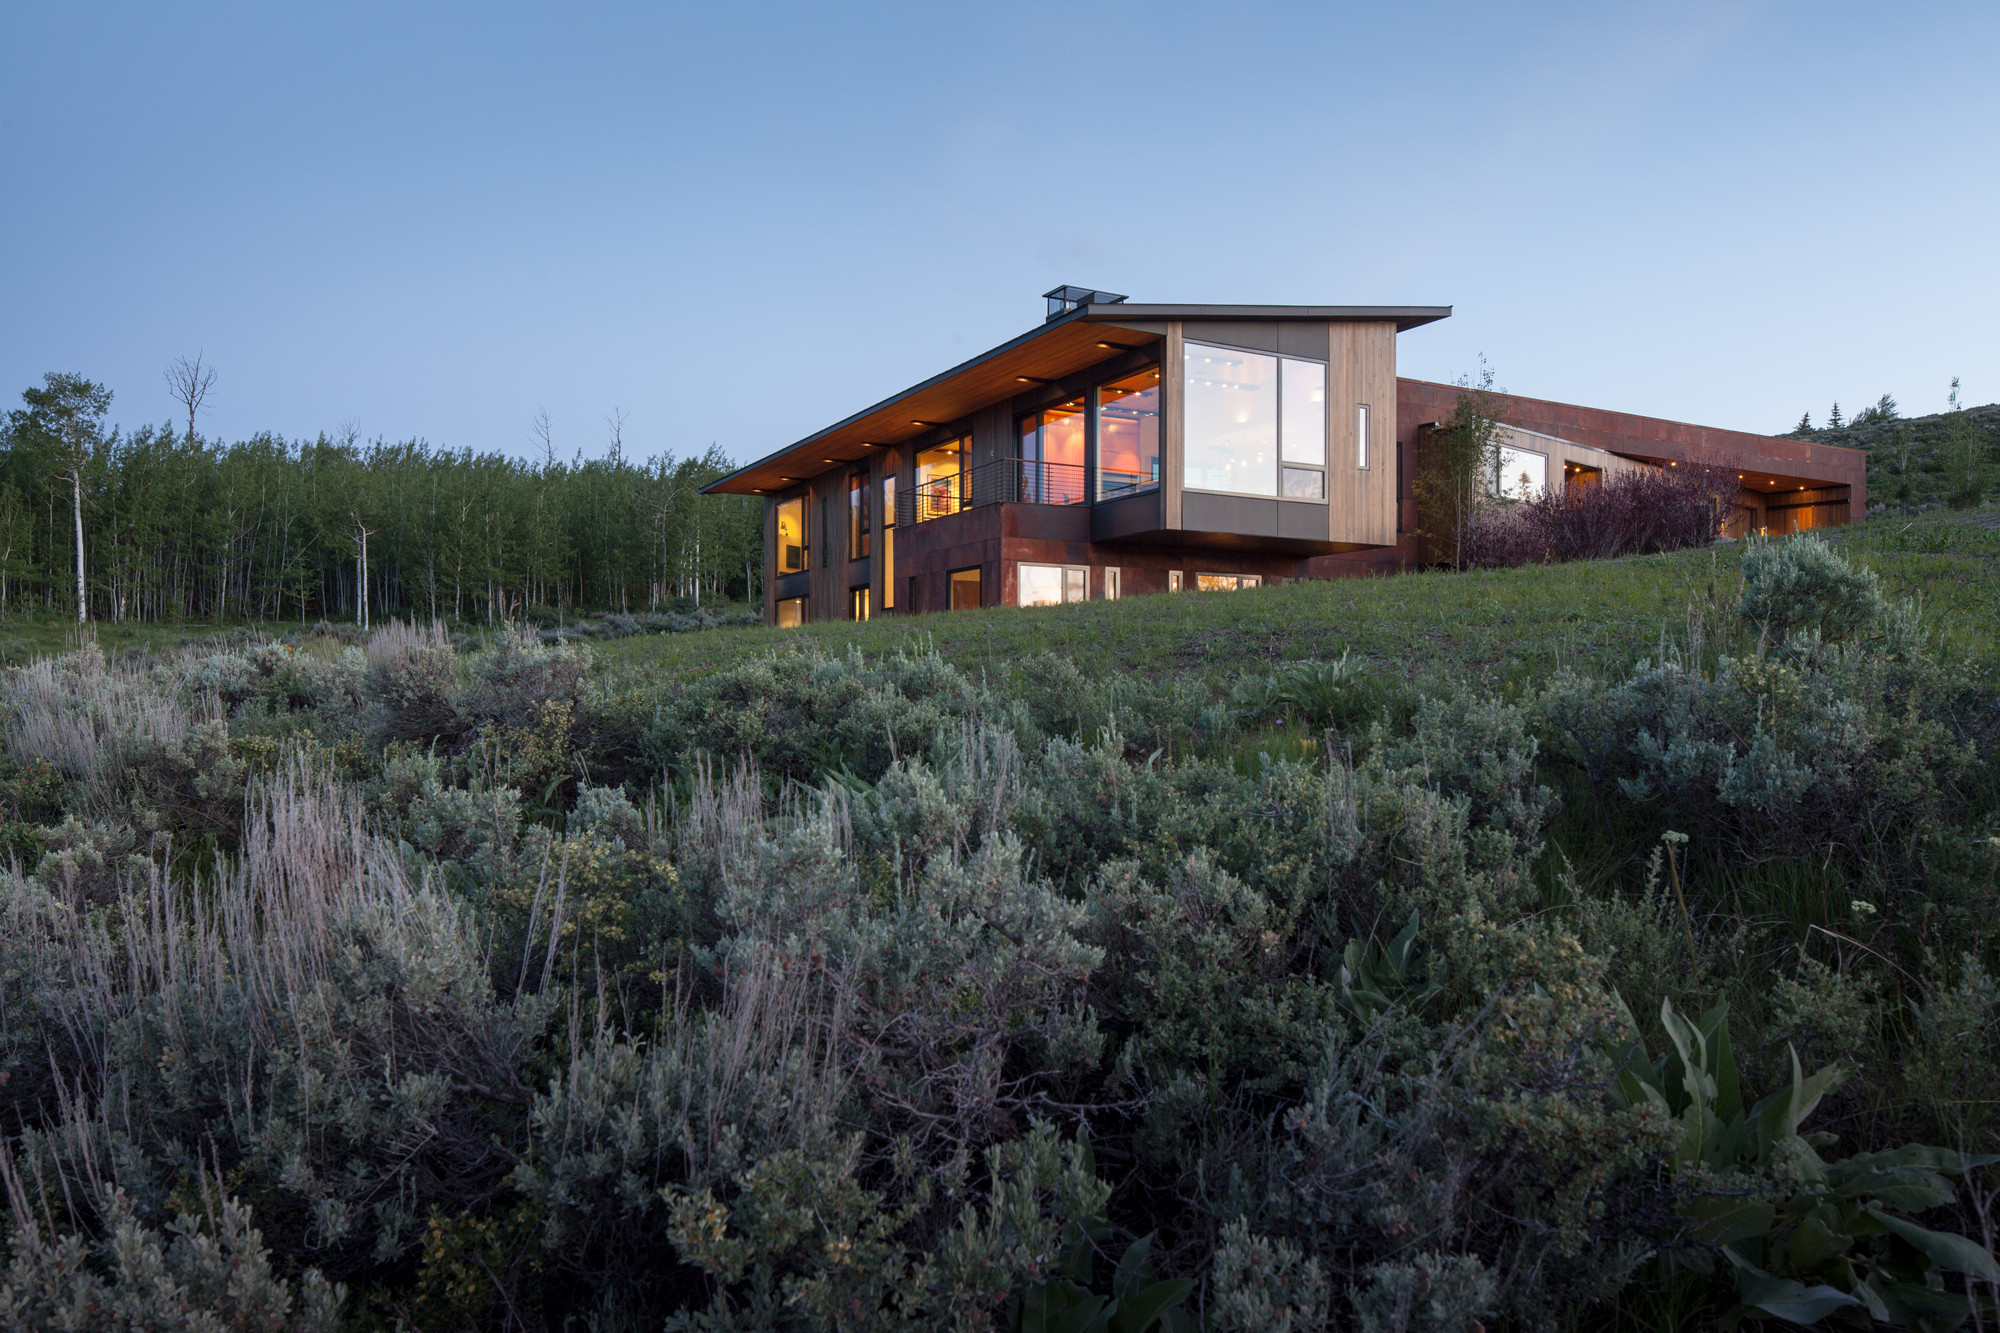 Gros Ventre Residence / Stephen Dynia Architects, Courtesy of Stephen Dynia Architects